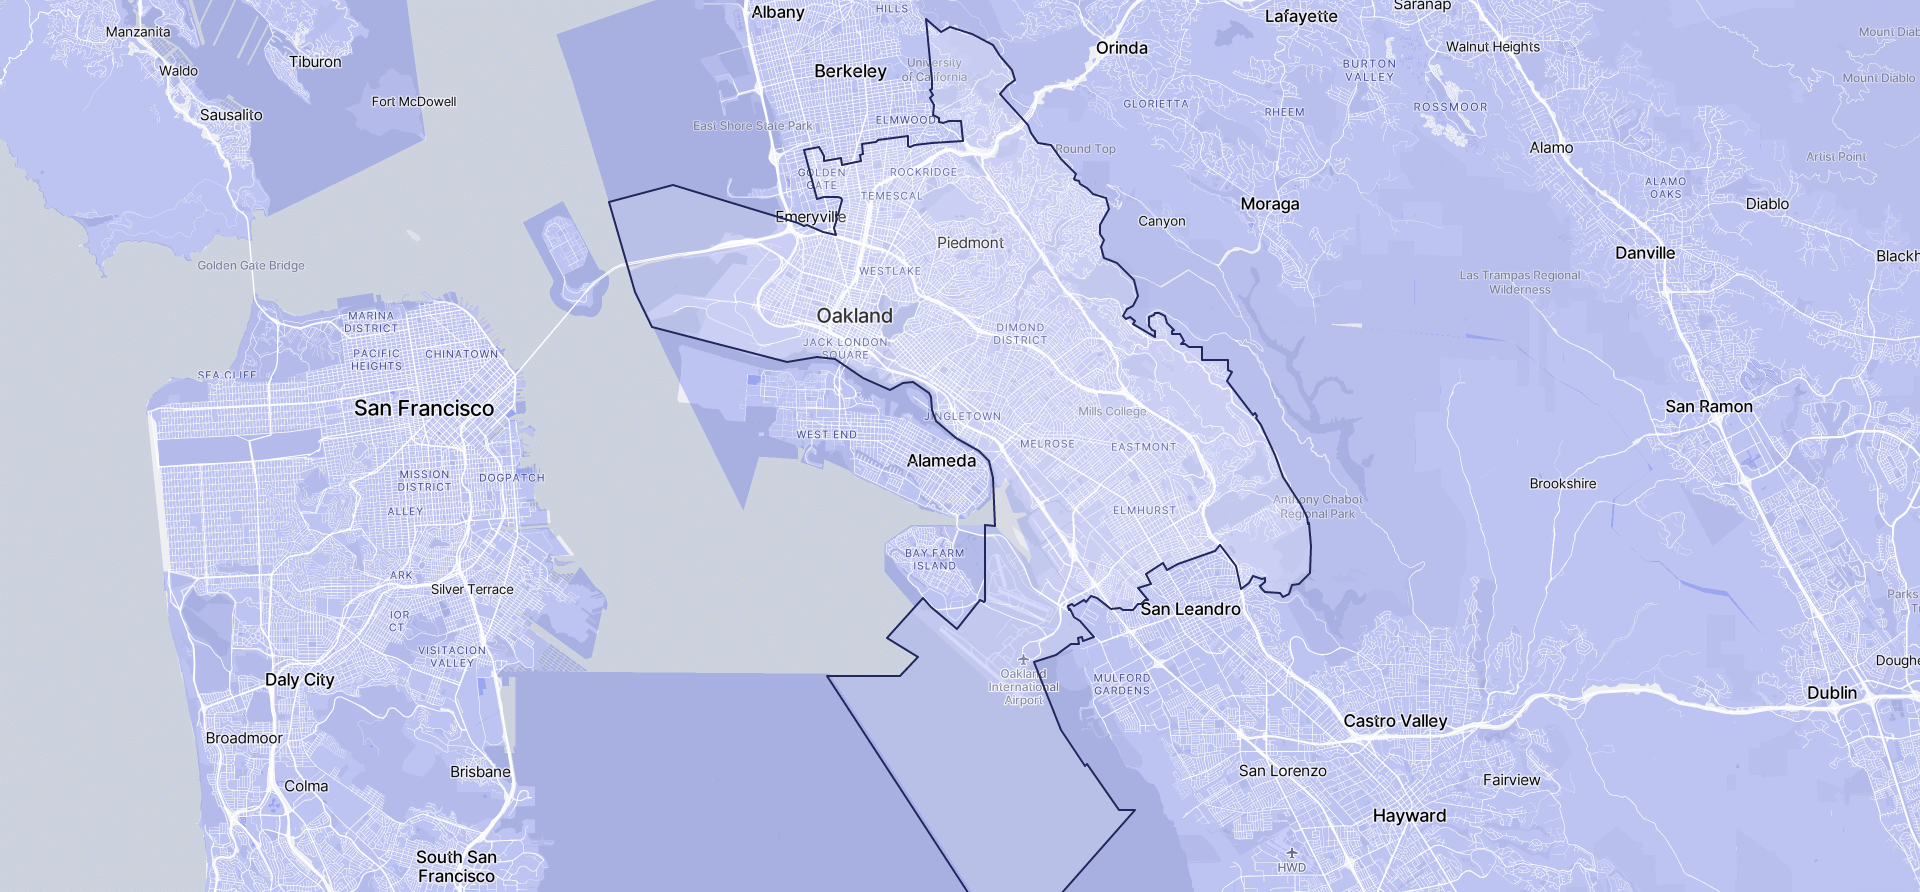 Image of Oakland boundaries on a map.